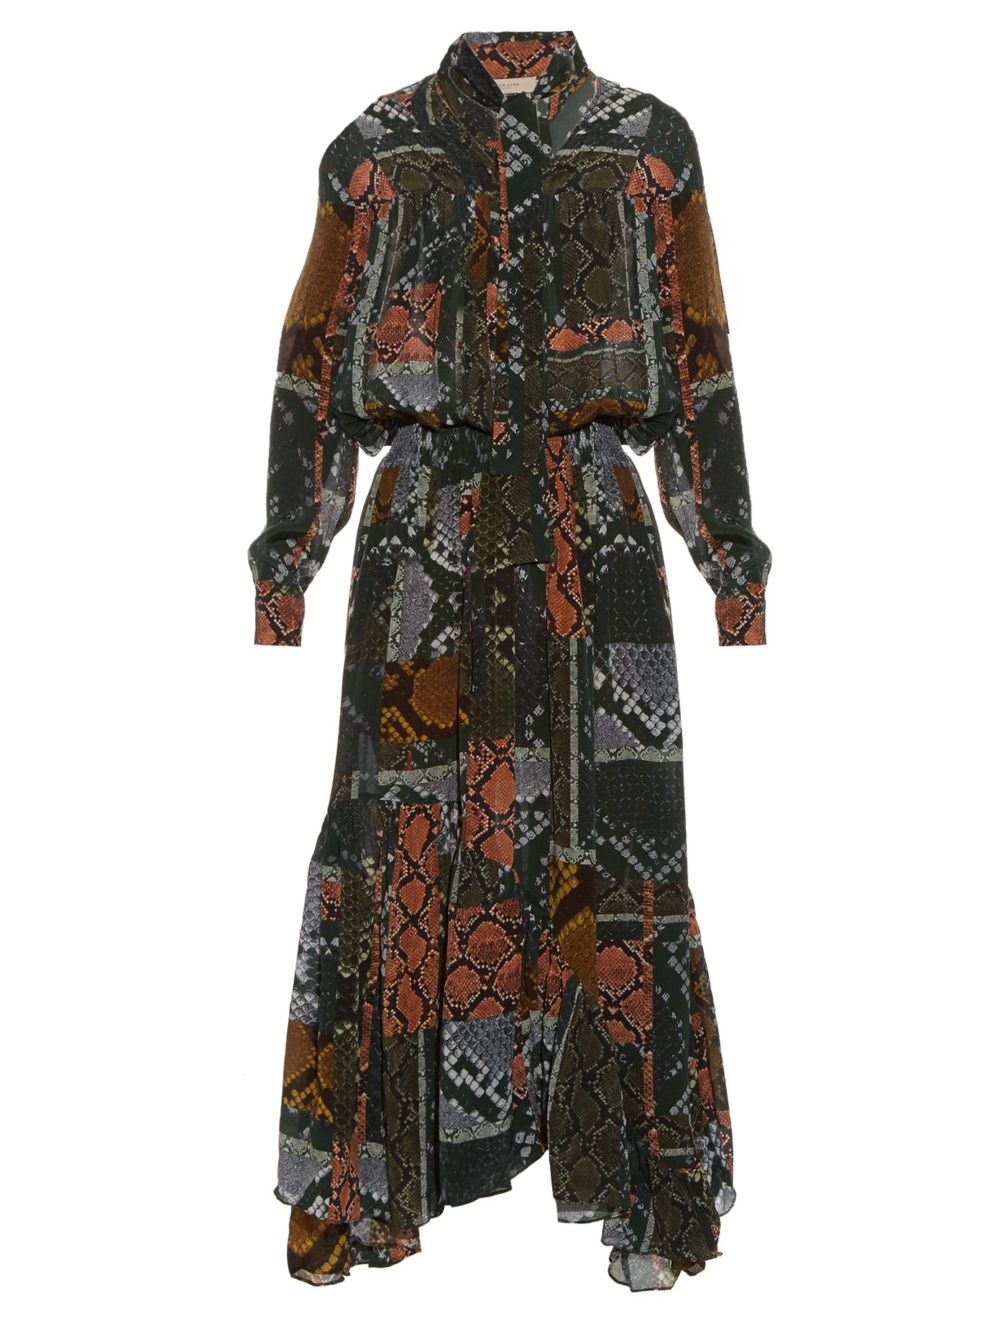 Martha snake-print tie-neck dress